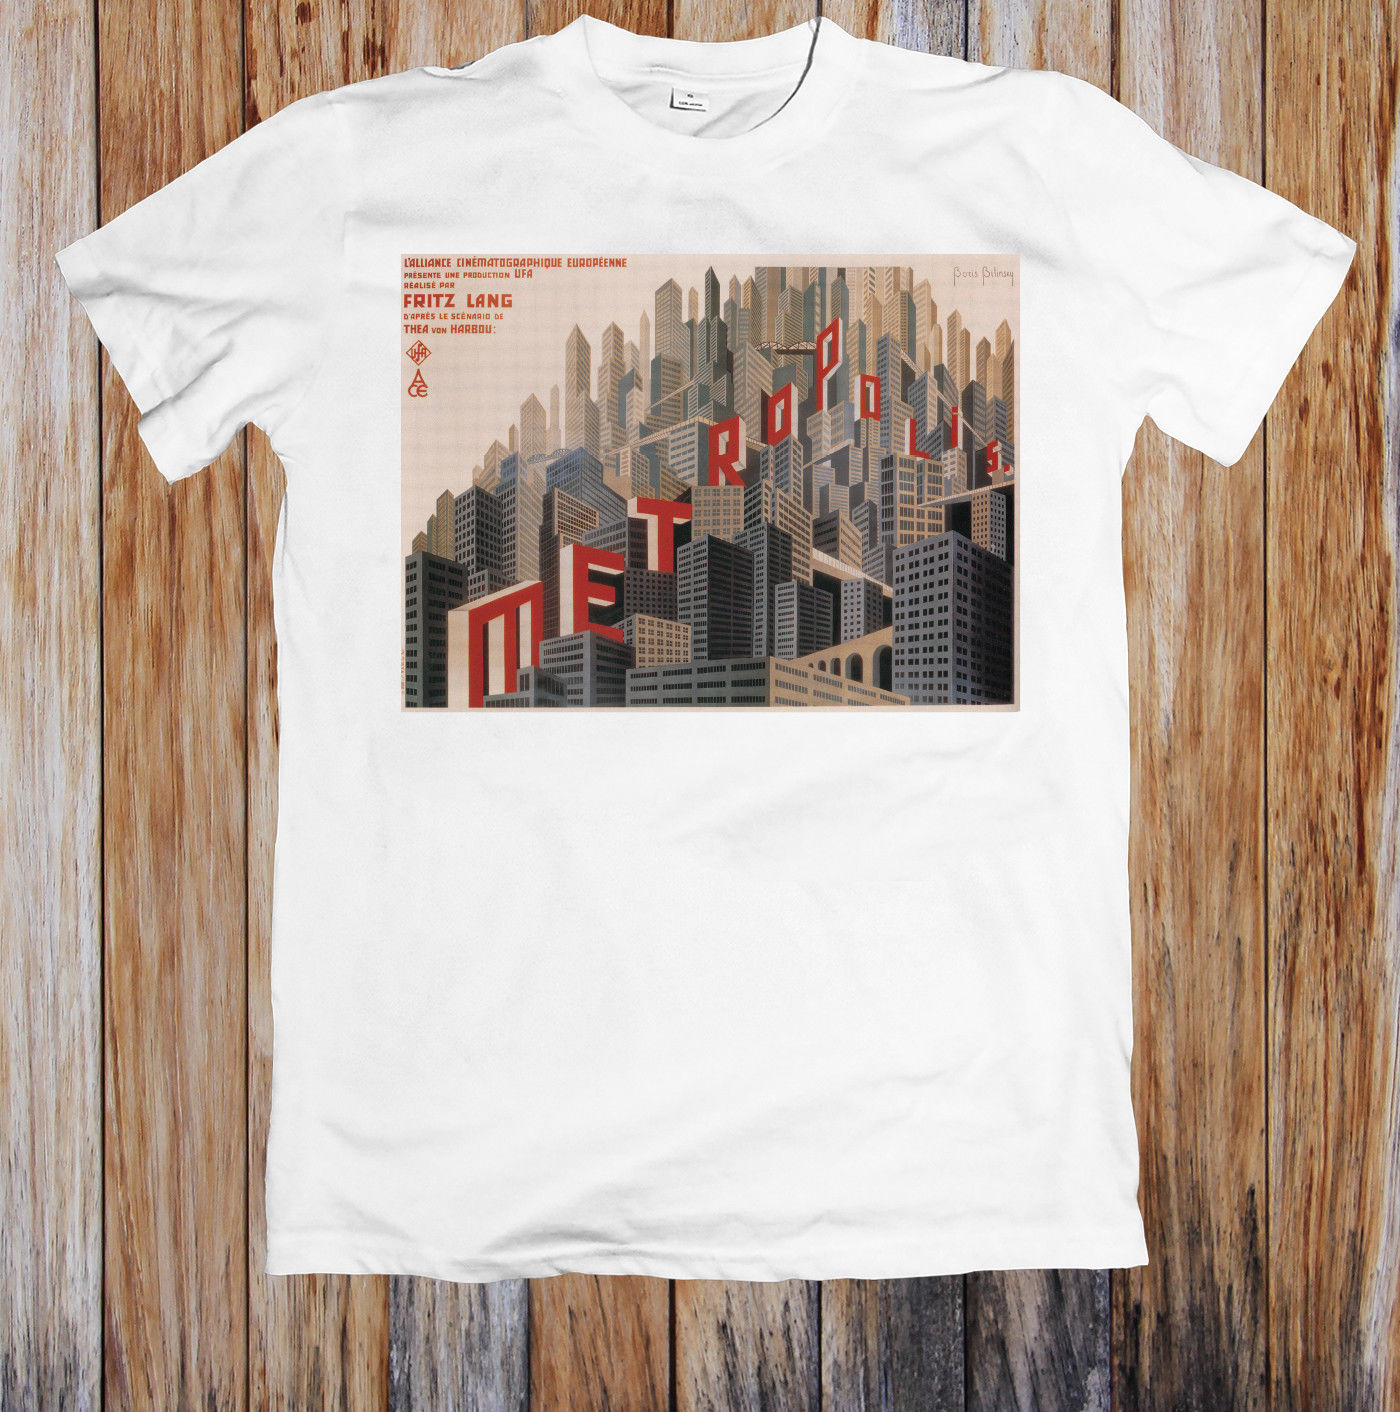 METROPOLIS 1920s RETRO SICI FI MOVIE POSTER UNISEX T SHIRT Hot Sell 2018 Fashion T Shirt Short Sleeve Tricolor in T Shirts from Men 39 s Clothing